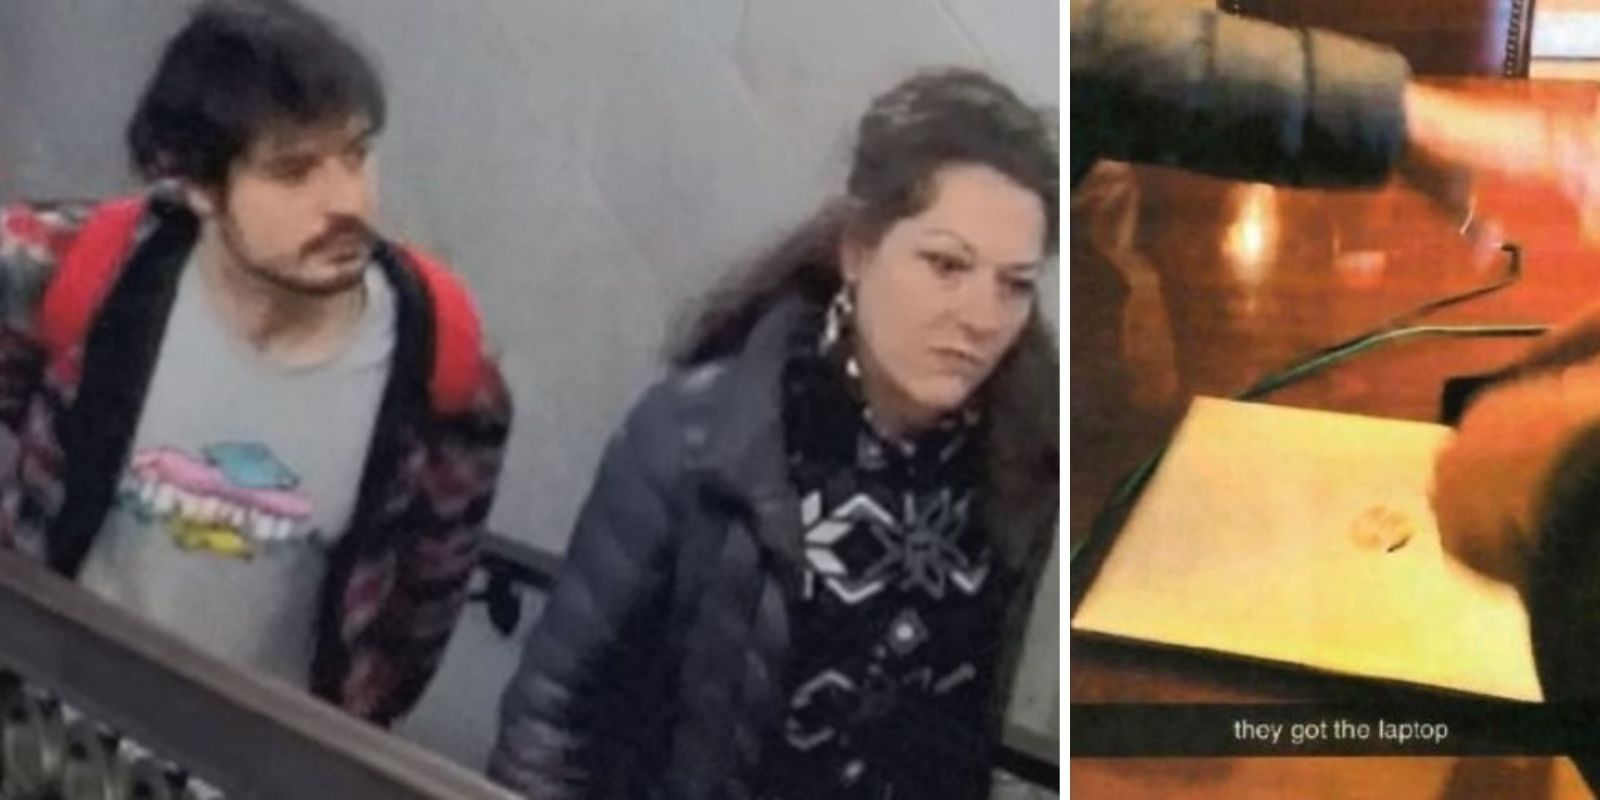 New York mother, son charged in connection to theft of Pelosi's laptop on Jan 6